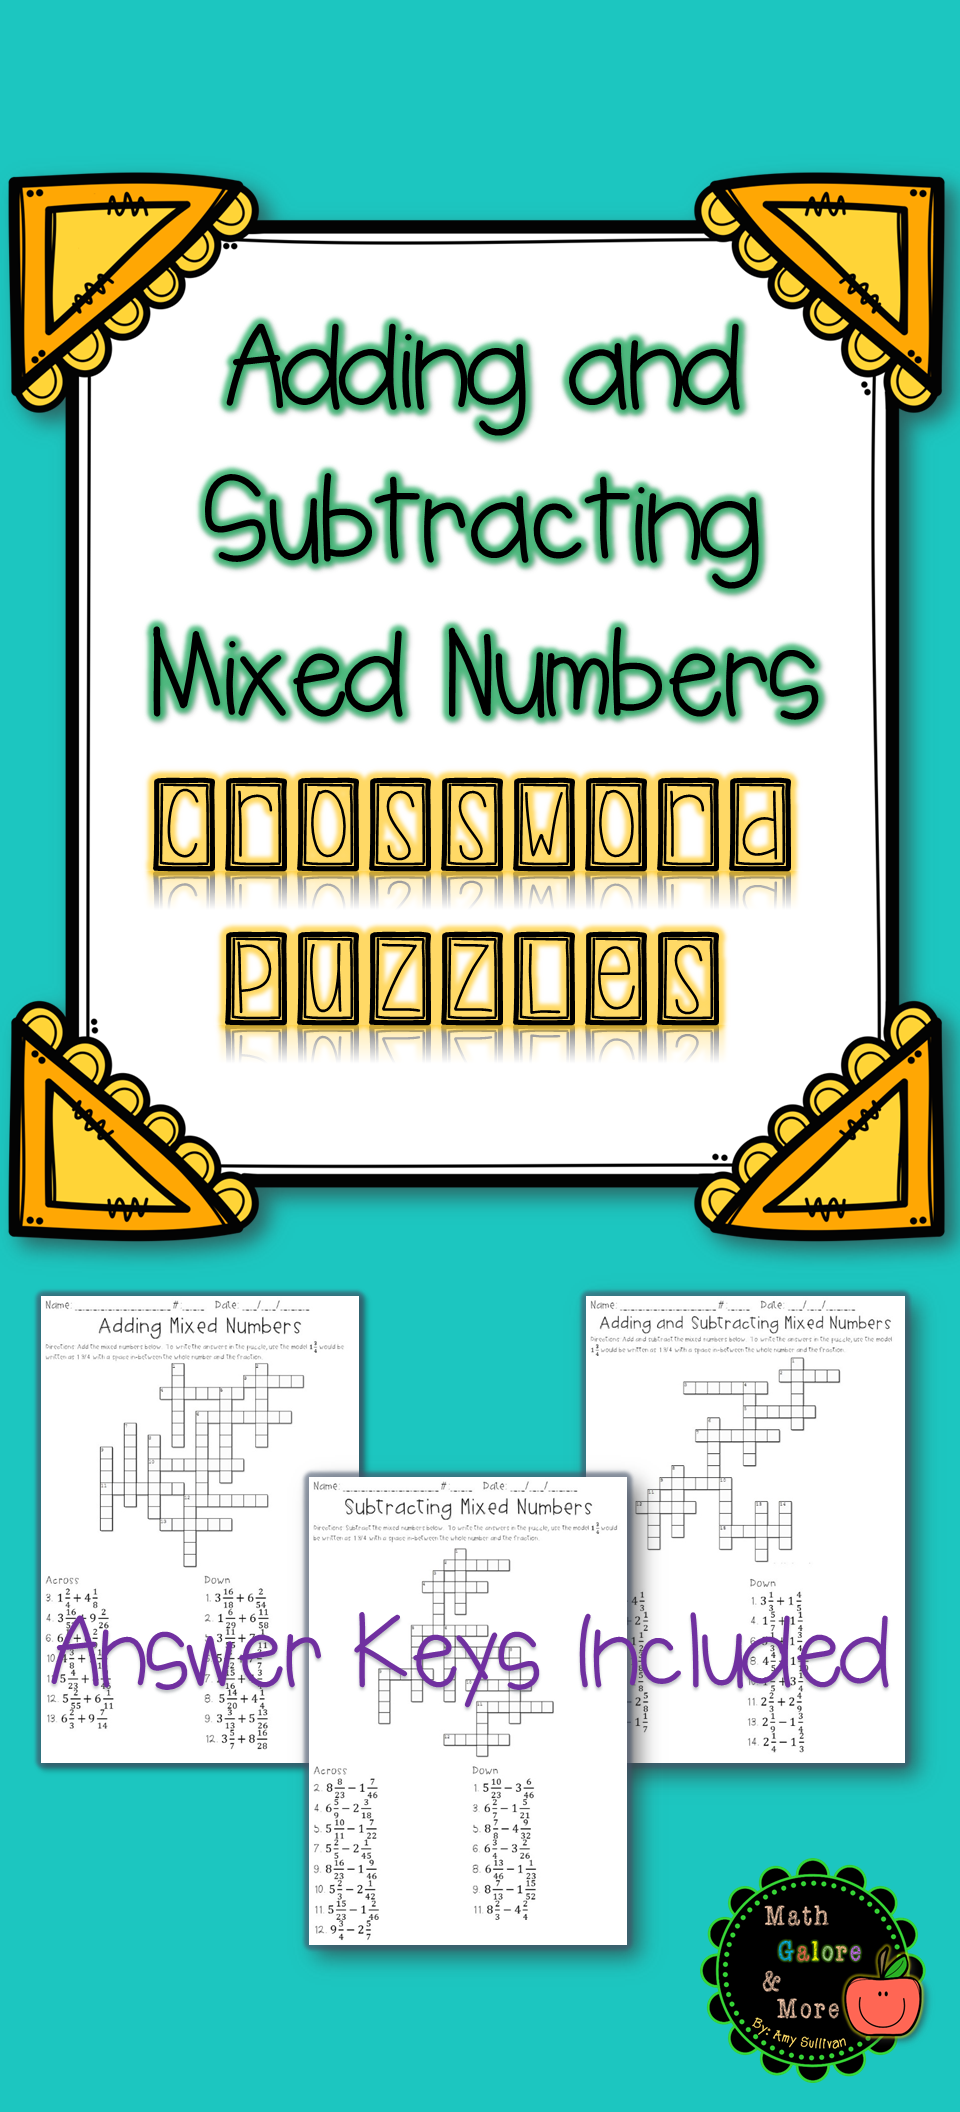 worksheet Adding Mixed Numbers adding and subtracting mixed numbers crossword puzzle activity activity